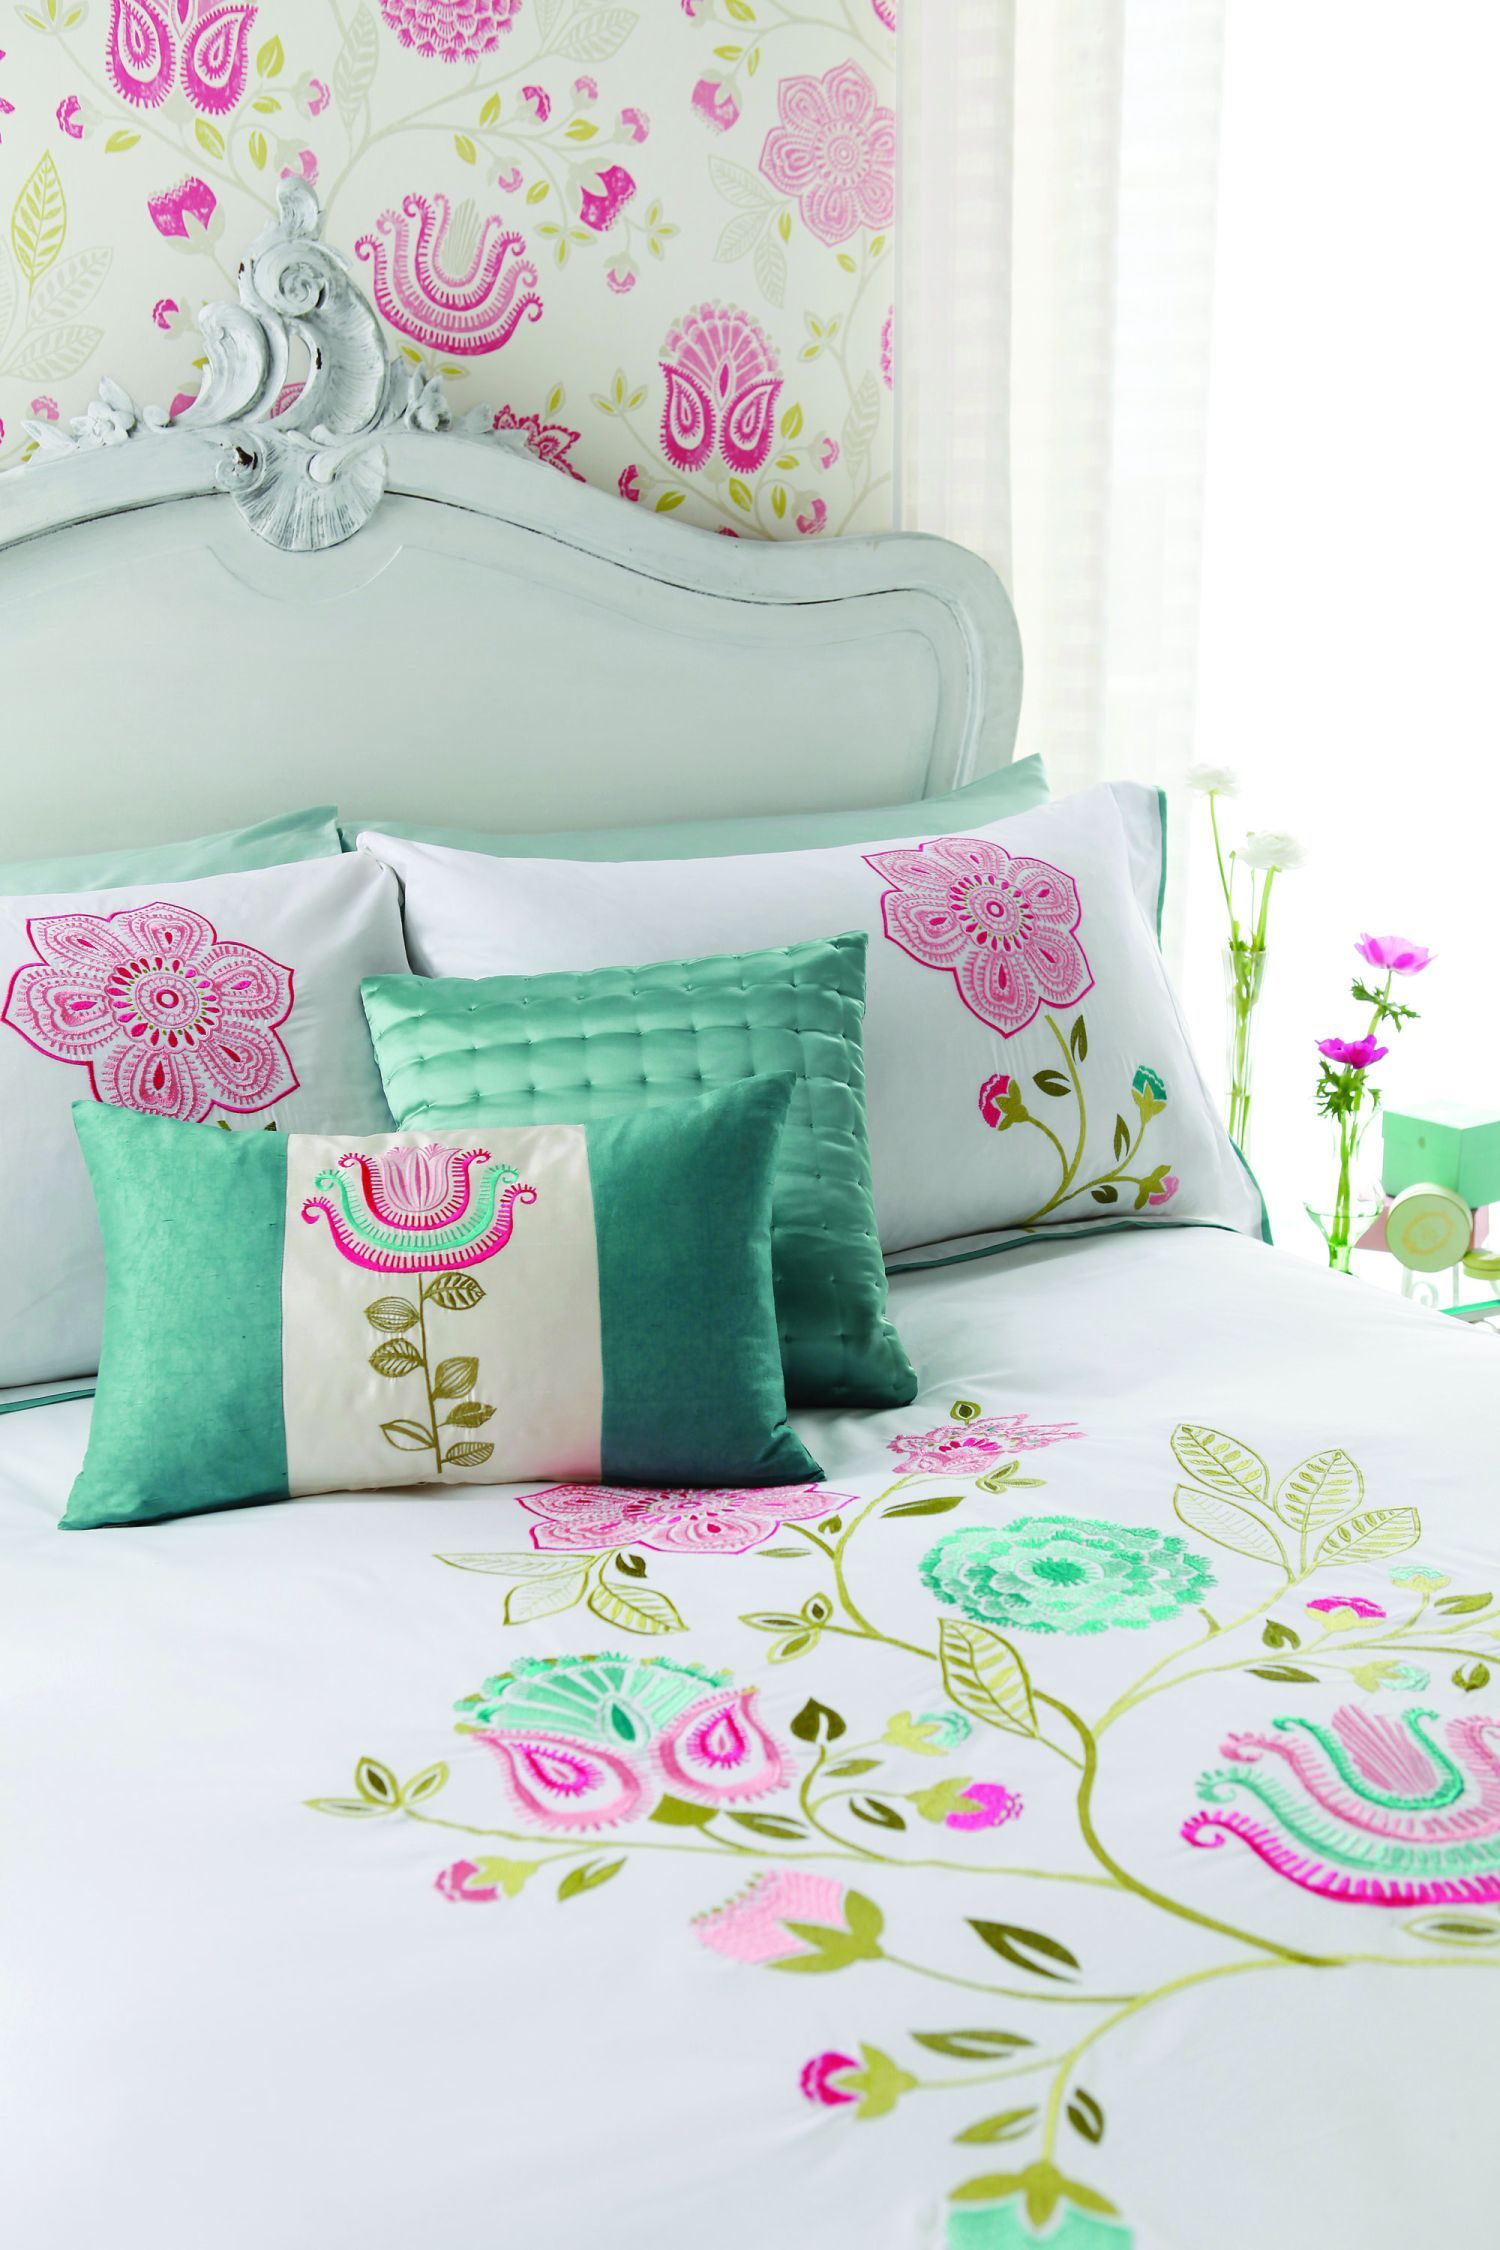 light blue and green floral, dainty girls bedding and